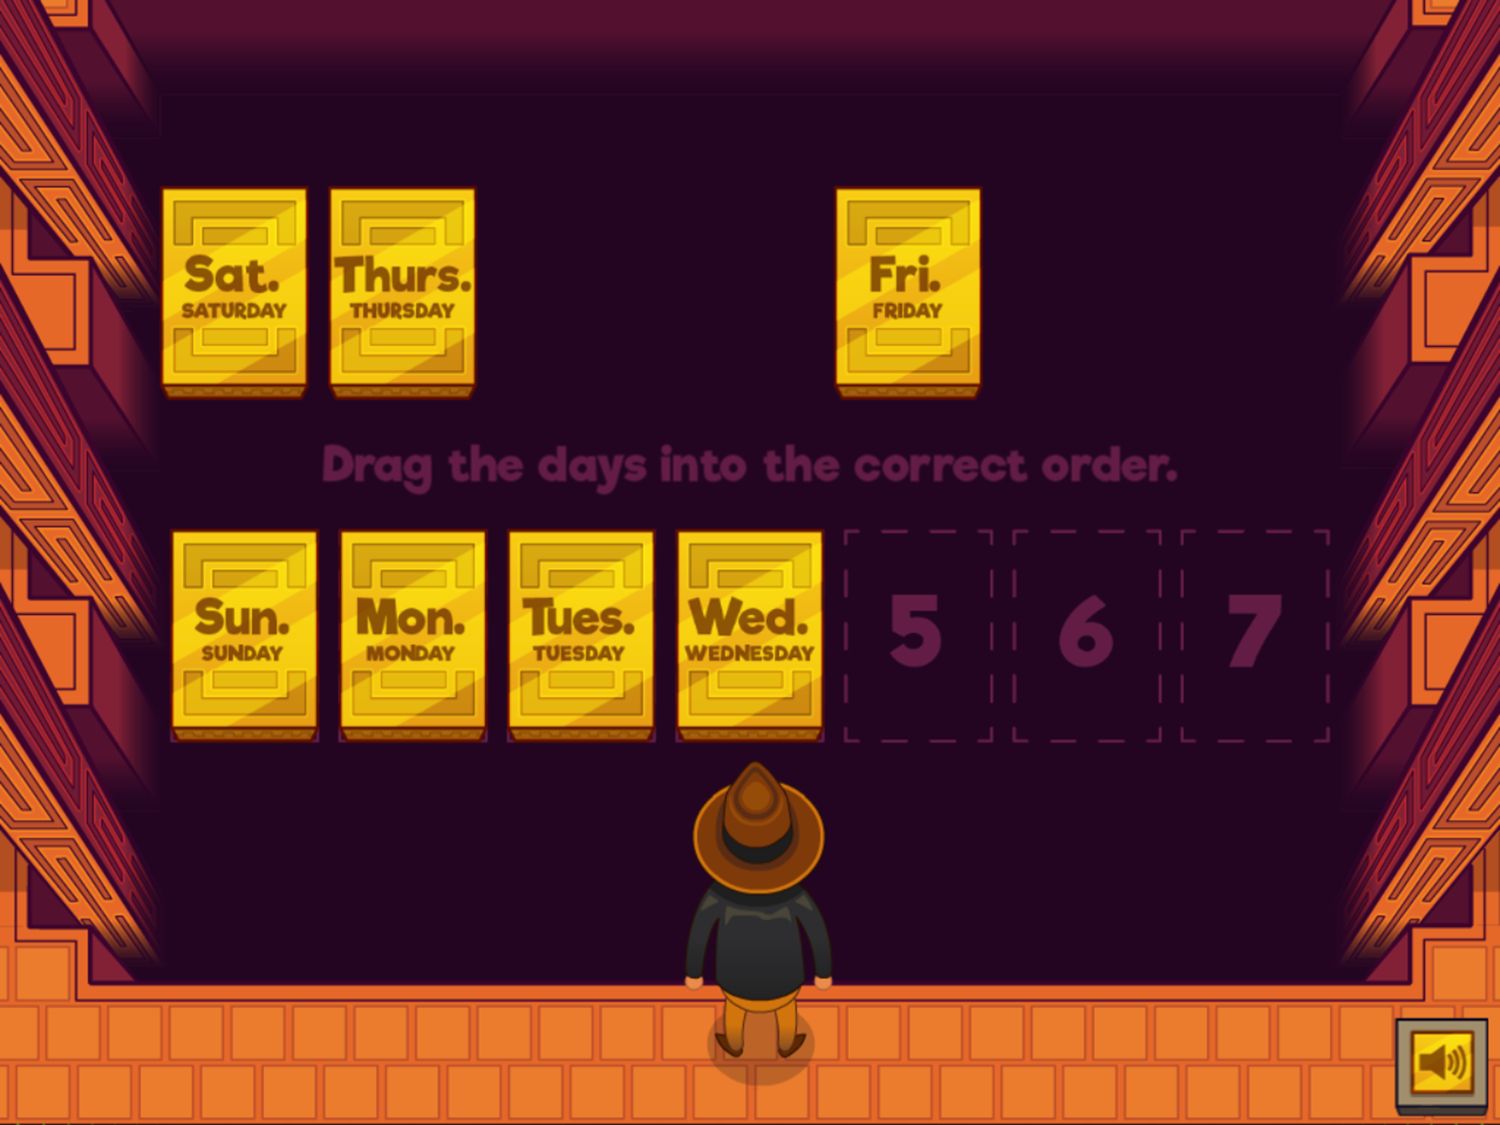 Adventure Man and the Days of the Week Game Arranging Days Screenshot.